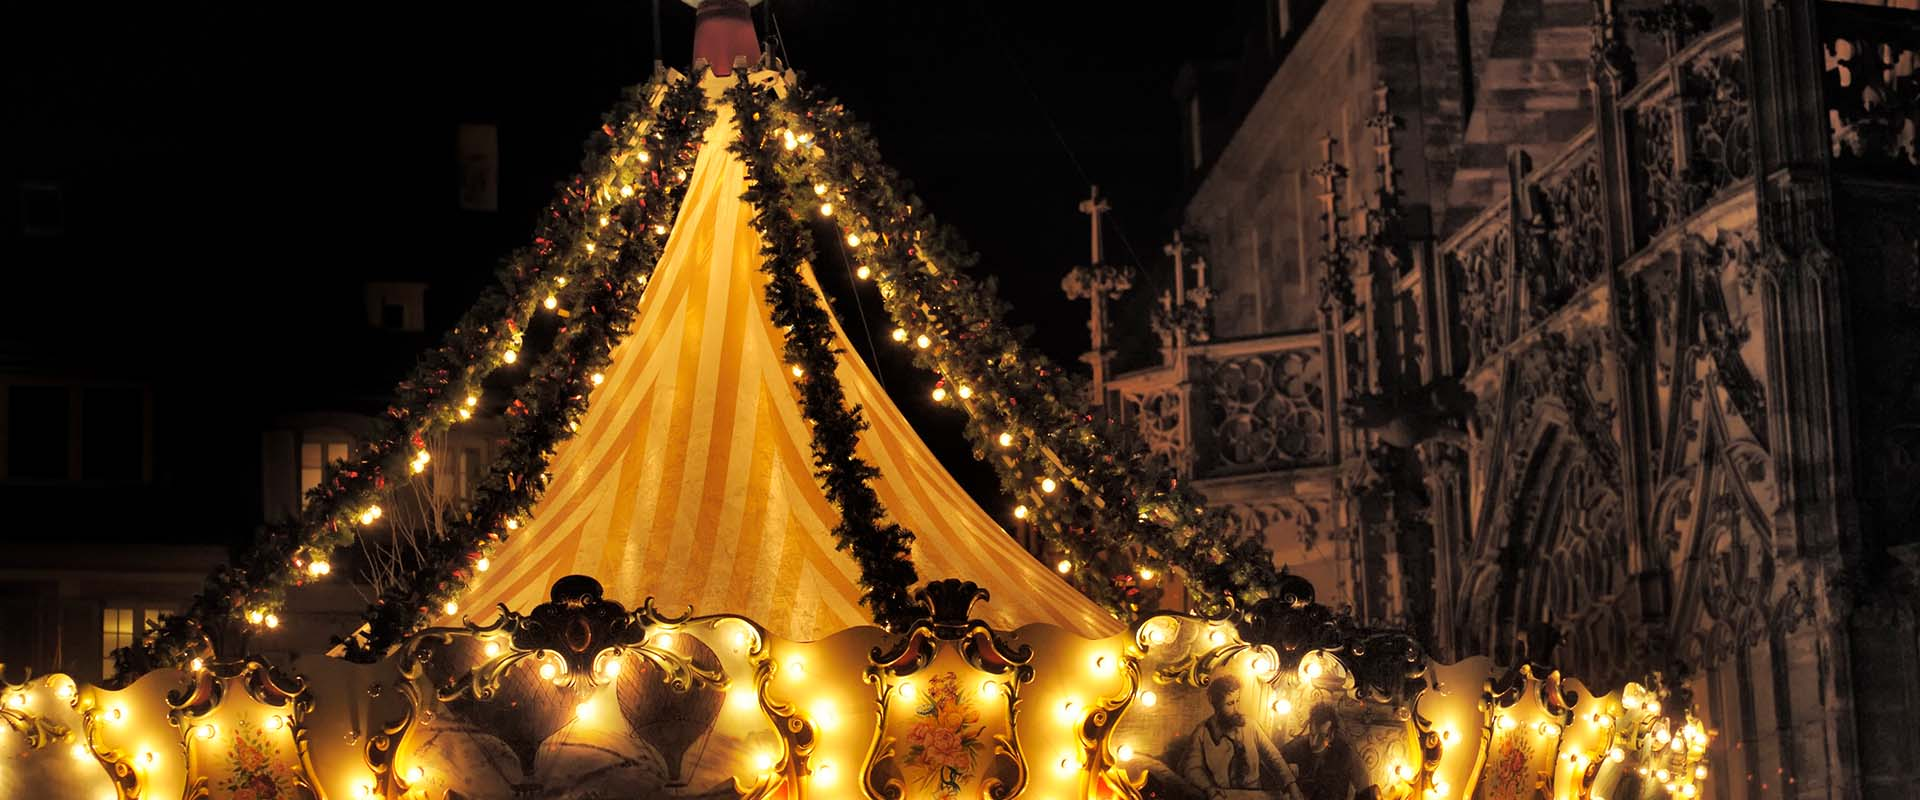 Christmas Day In France.St Stephen S Day 2019 And 2020 Publicholidays Fr